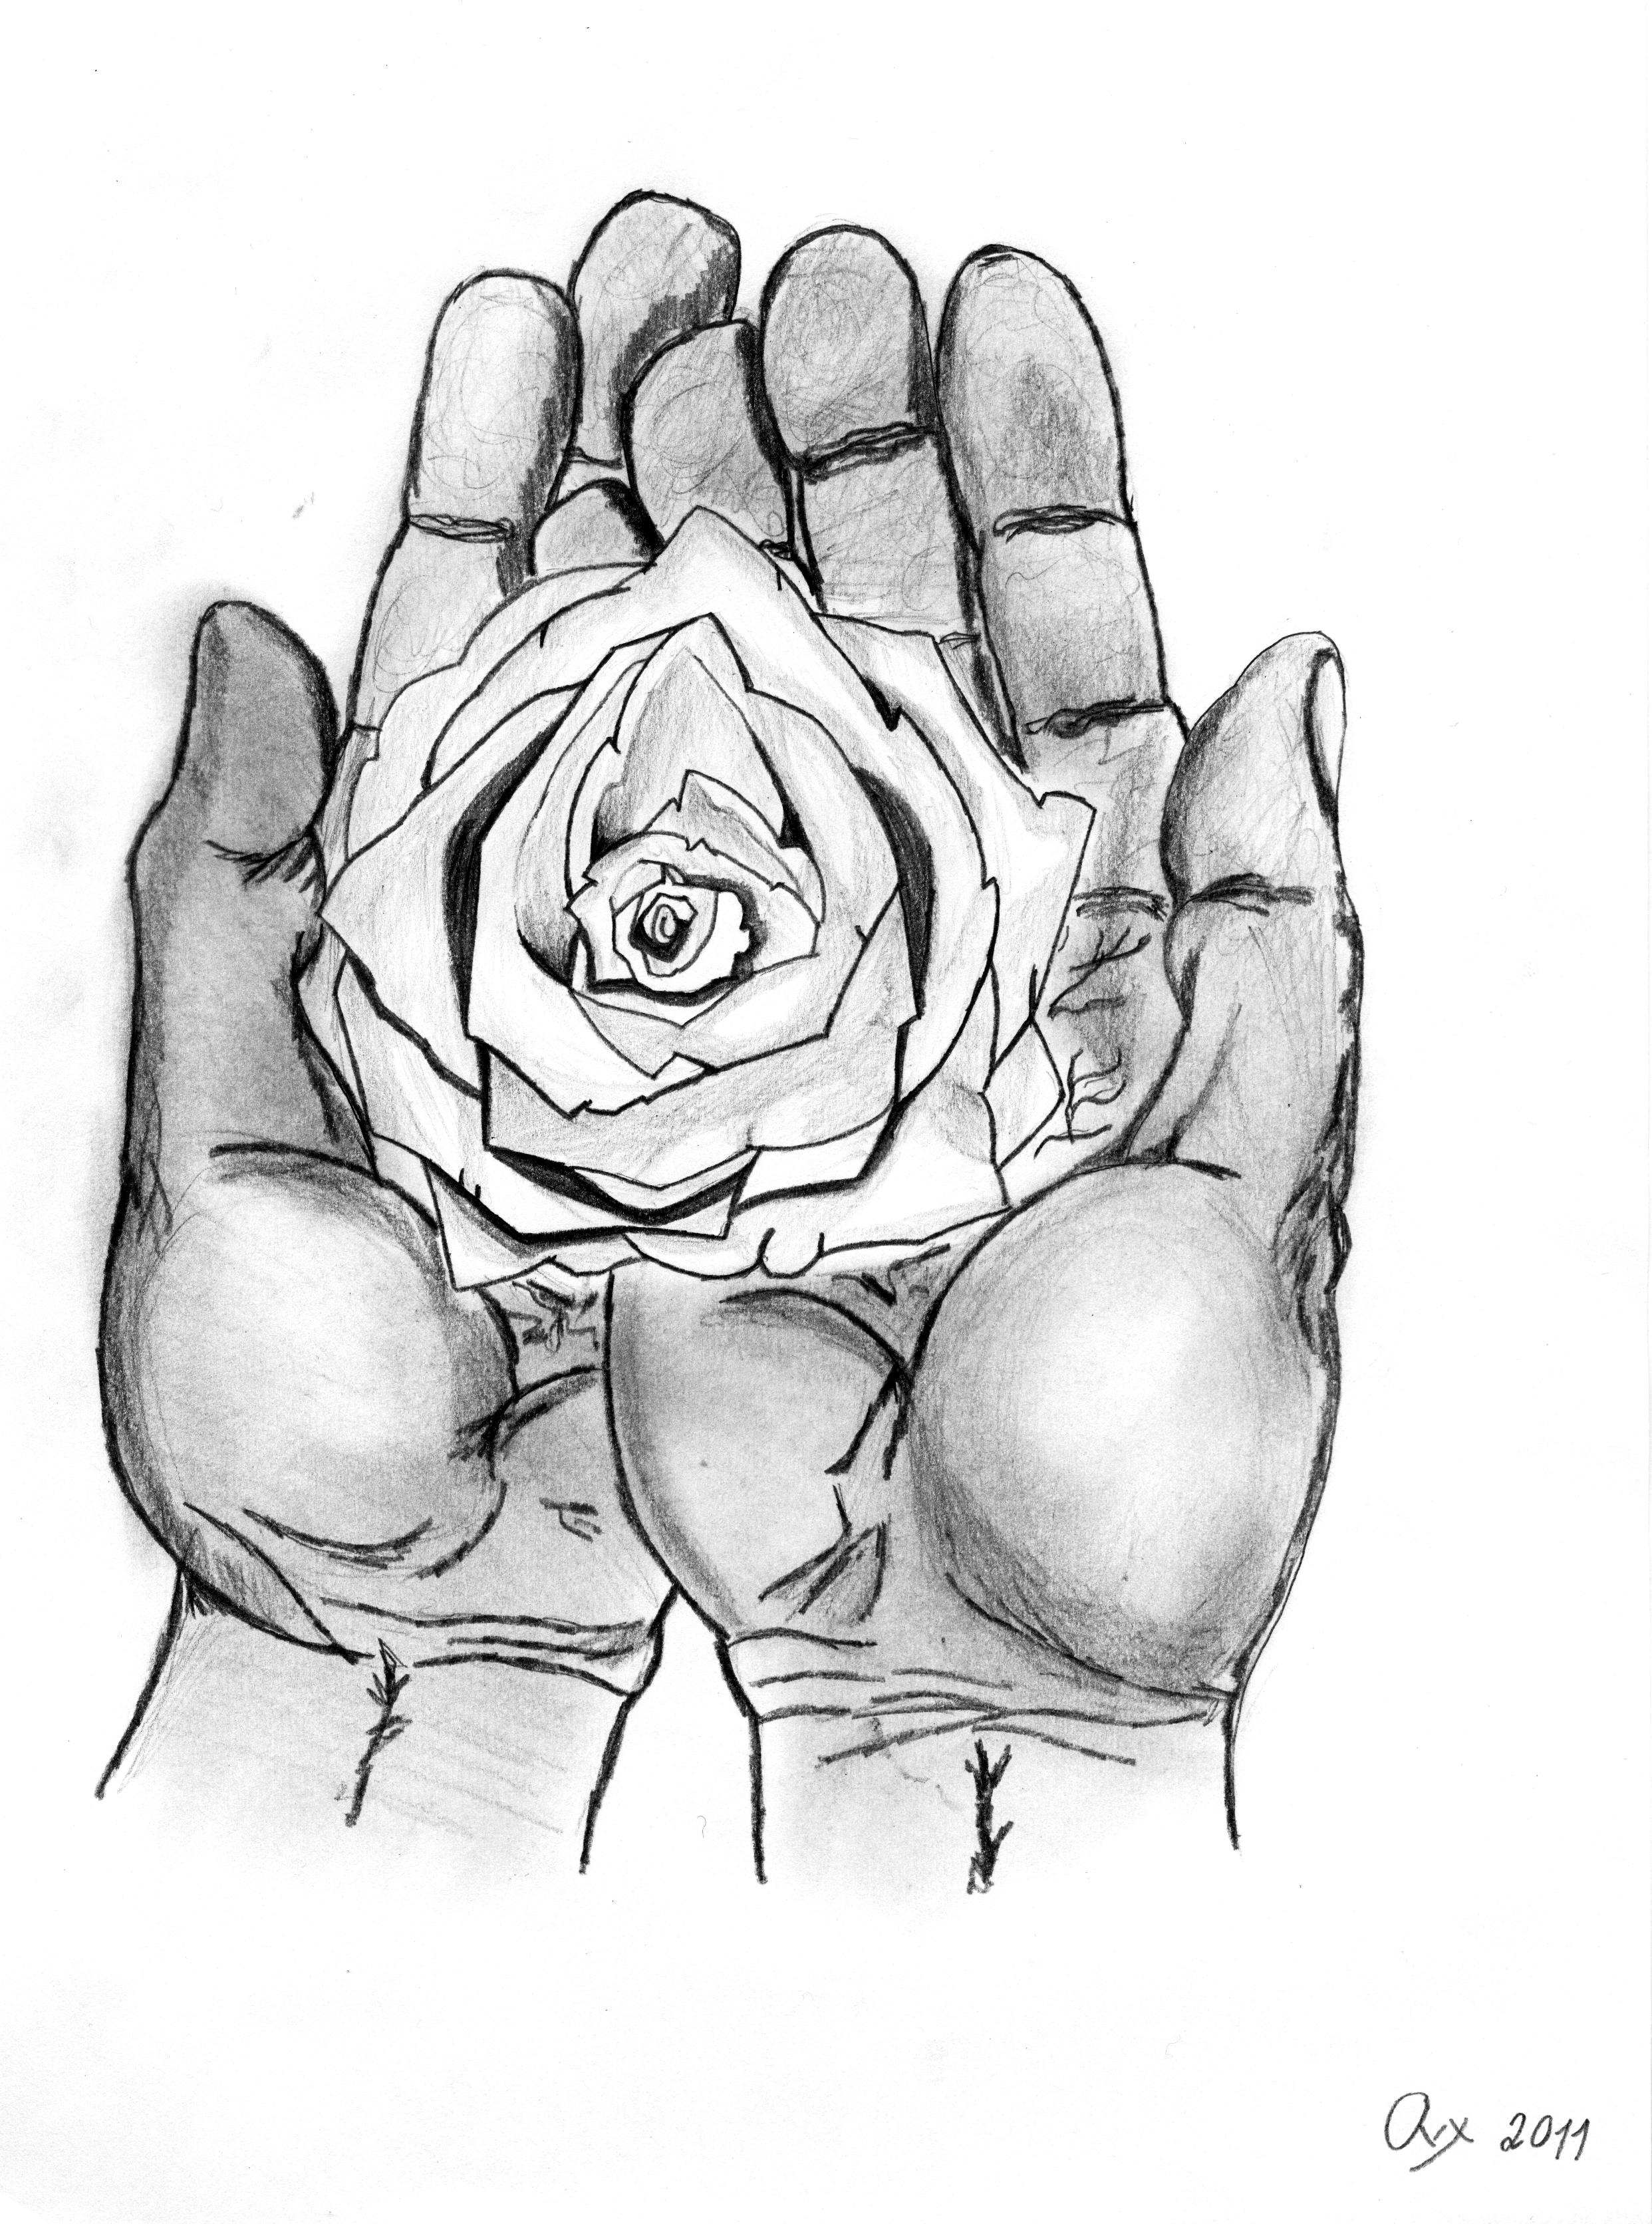 Drawn rose hand holding Something Pictures Holding Draw Hand